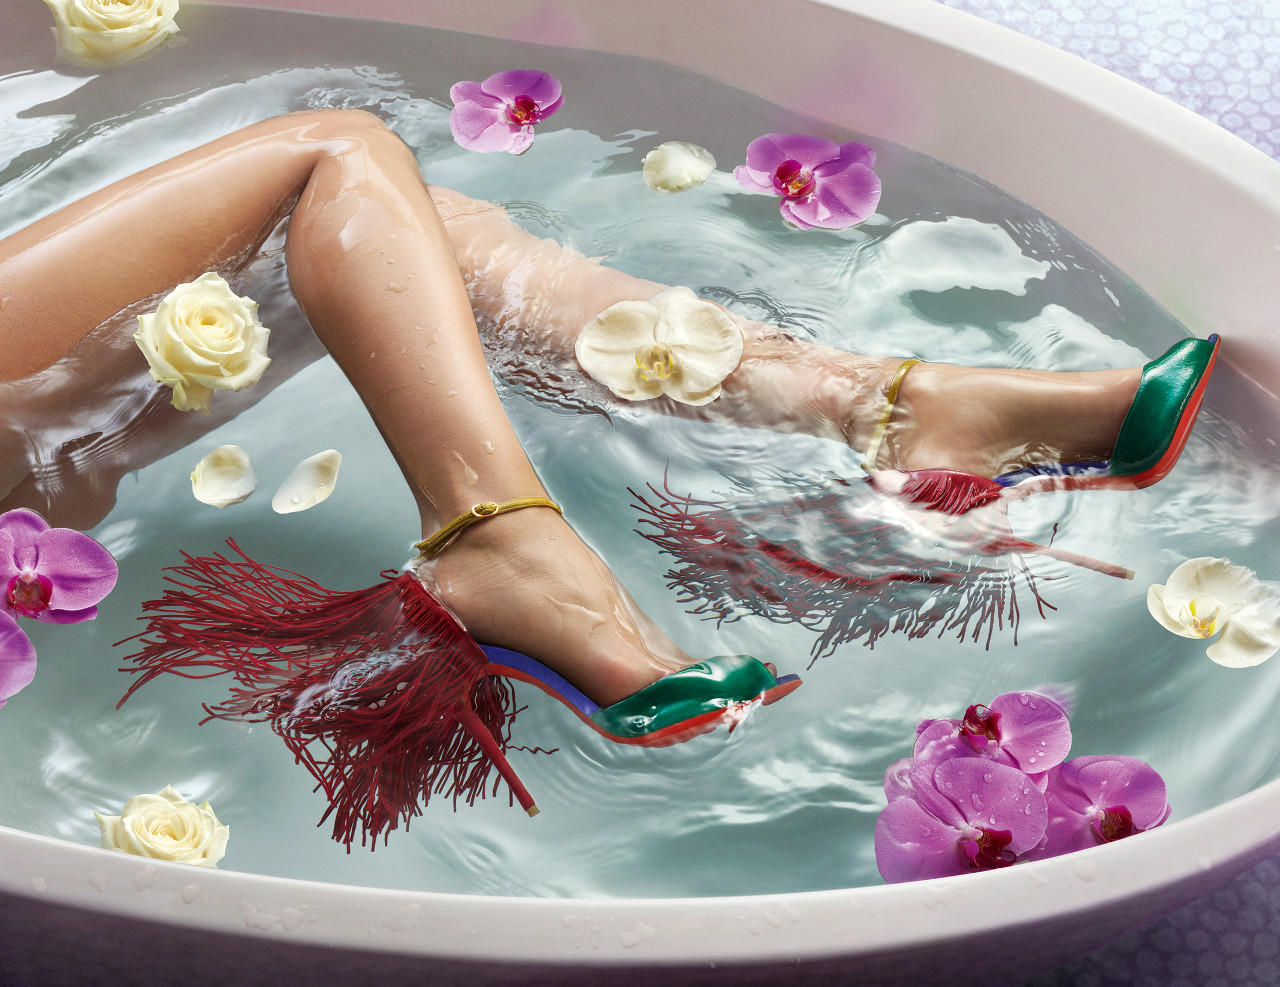 Louboutin hits the tub for SS15